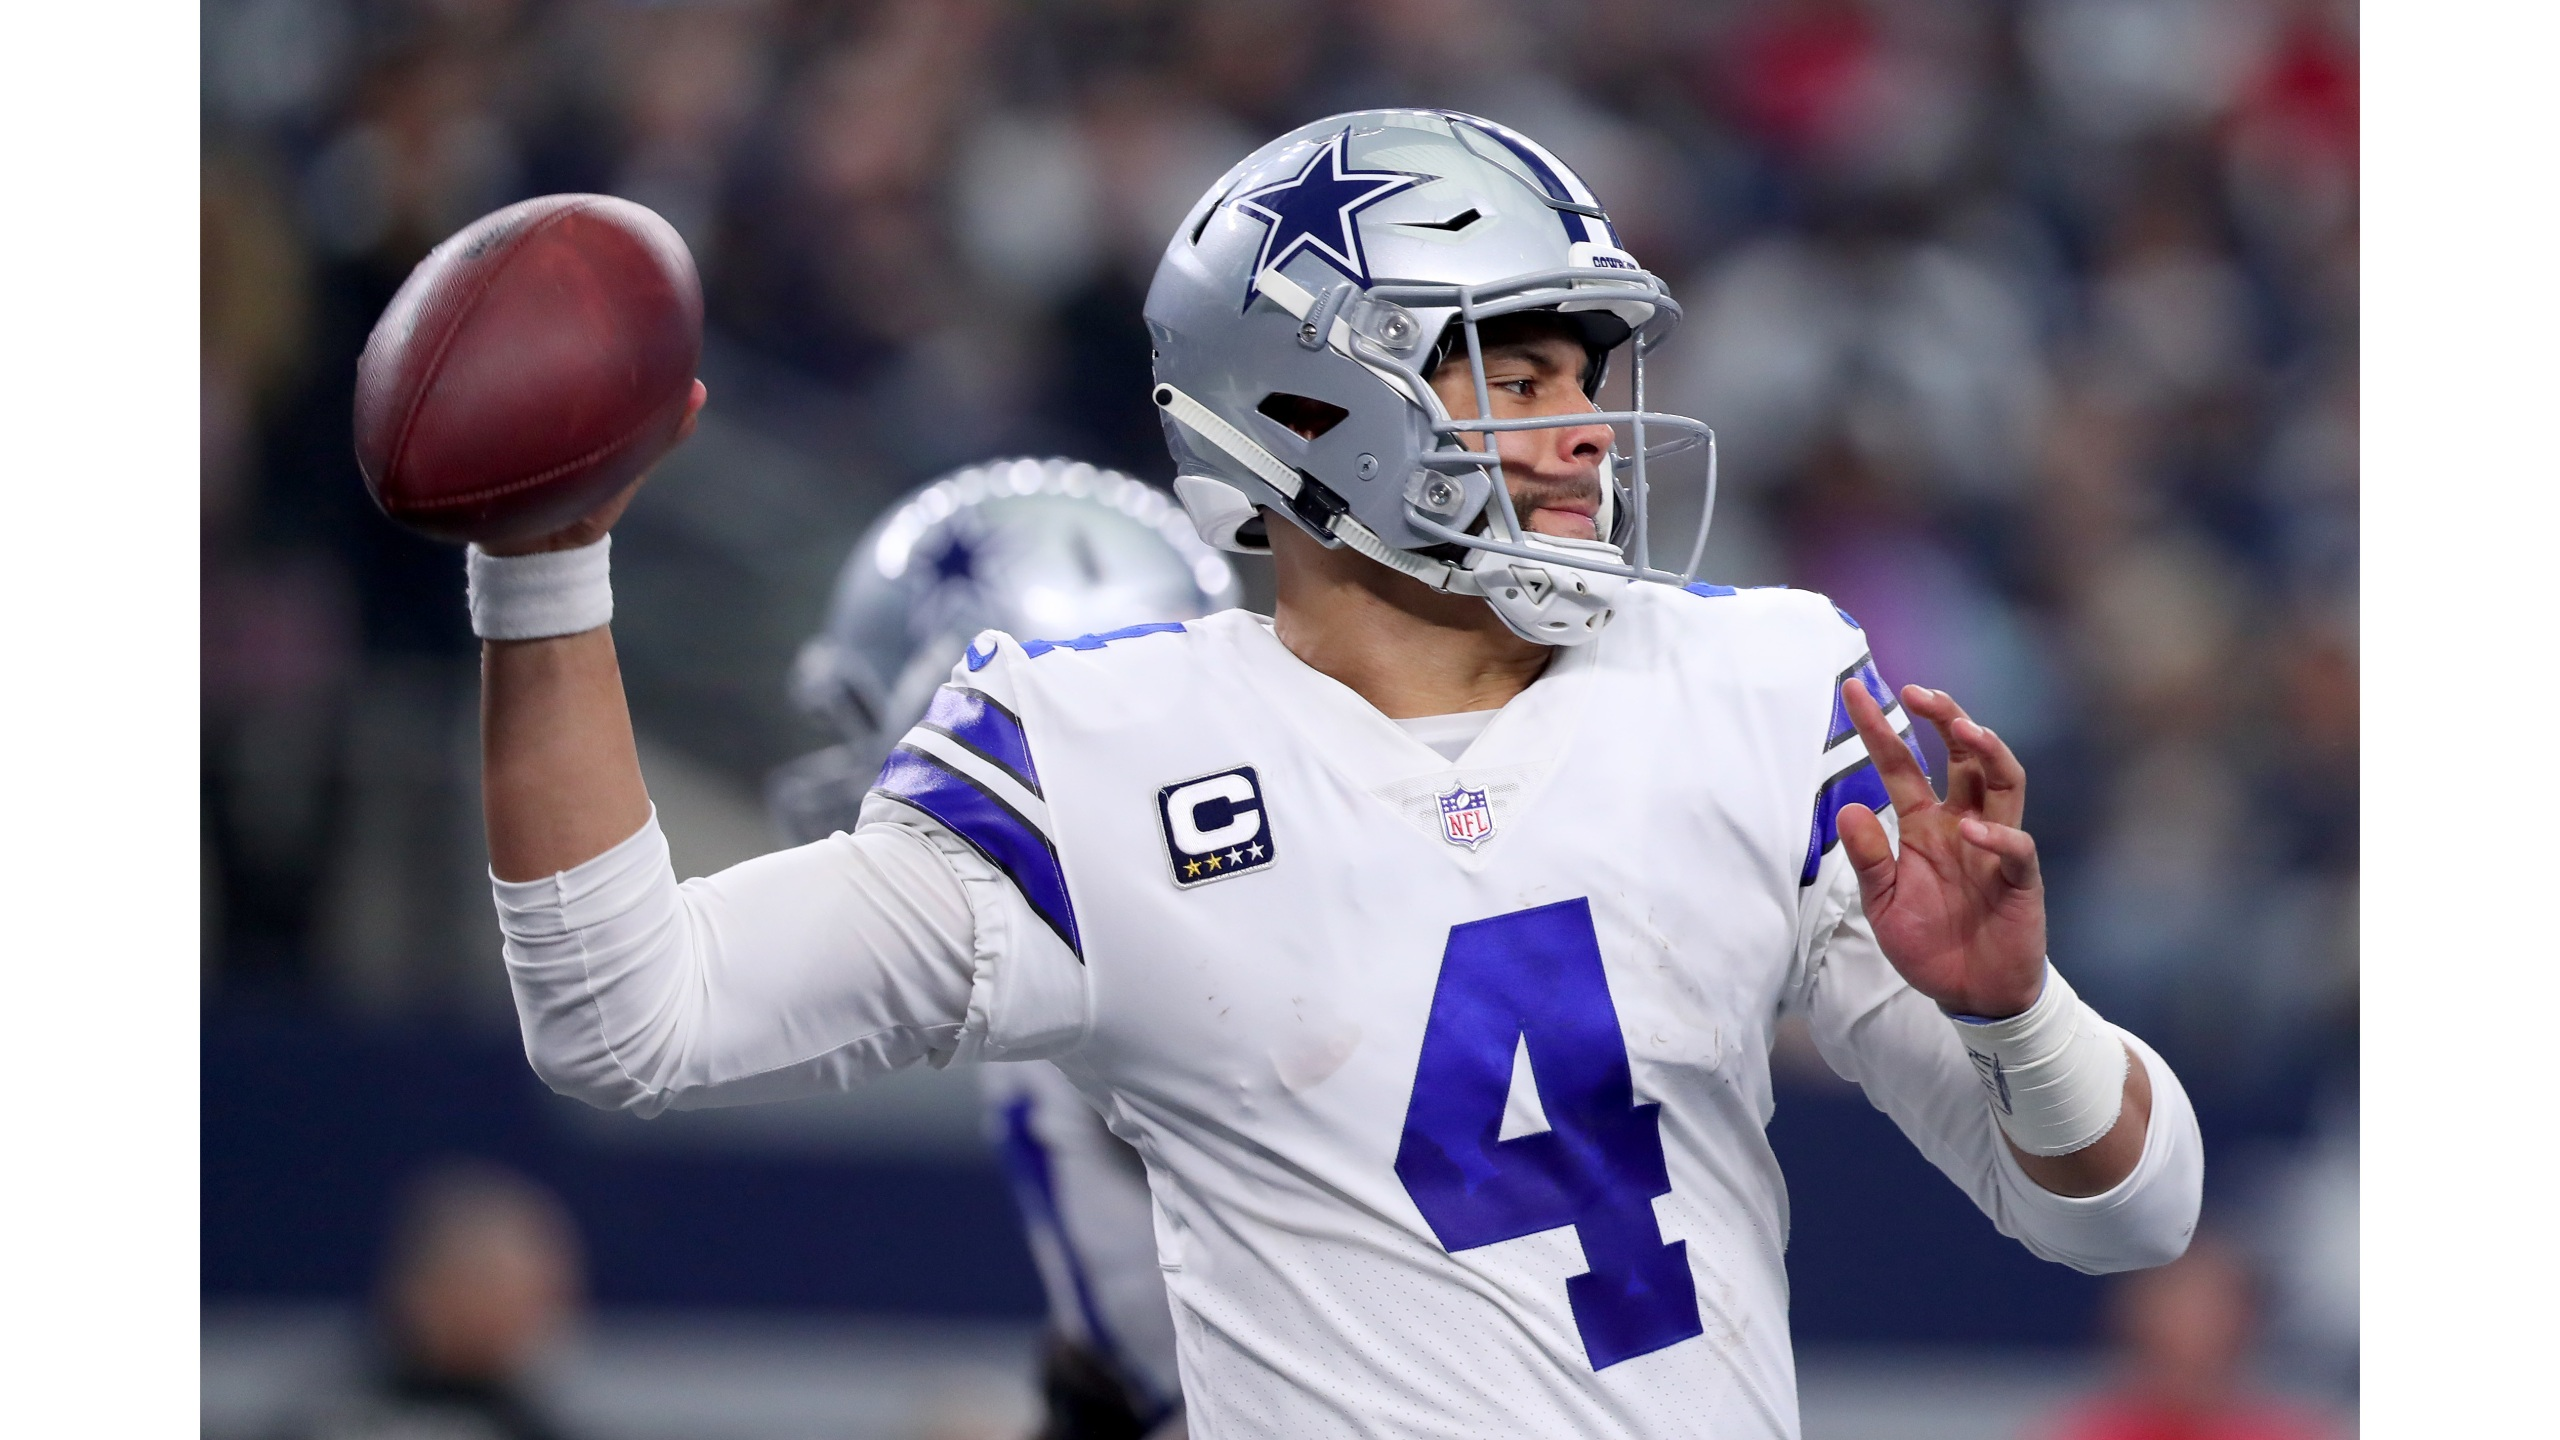 What_more_does_Dak_need_to_do_for_a_Cowb_0_20190104012010-54787063